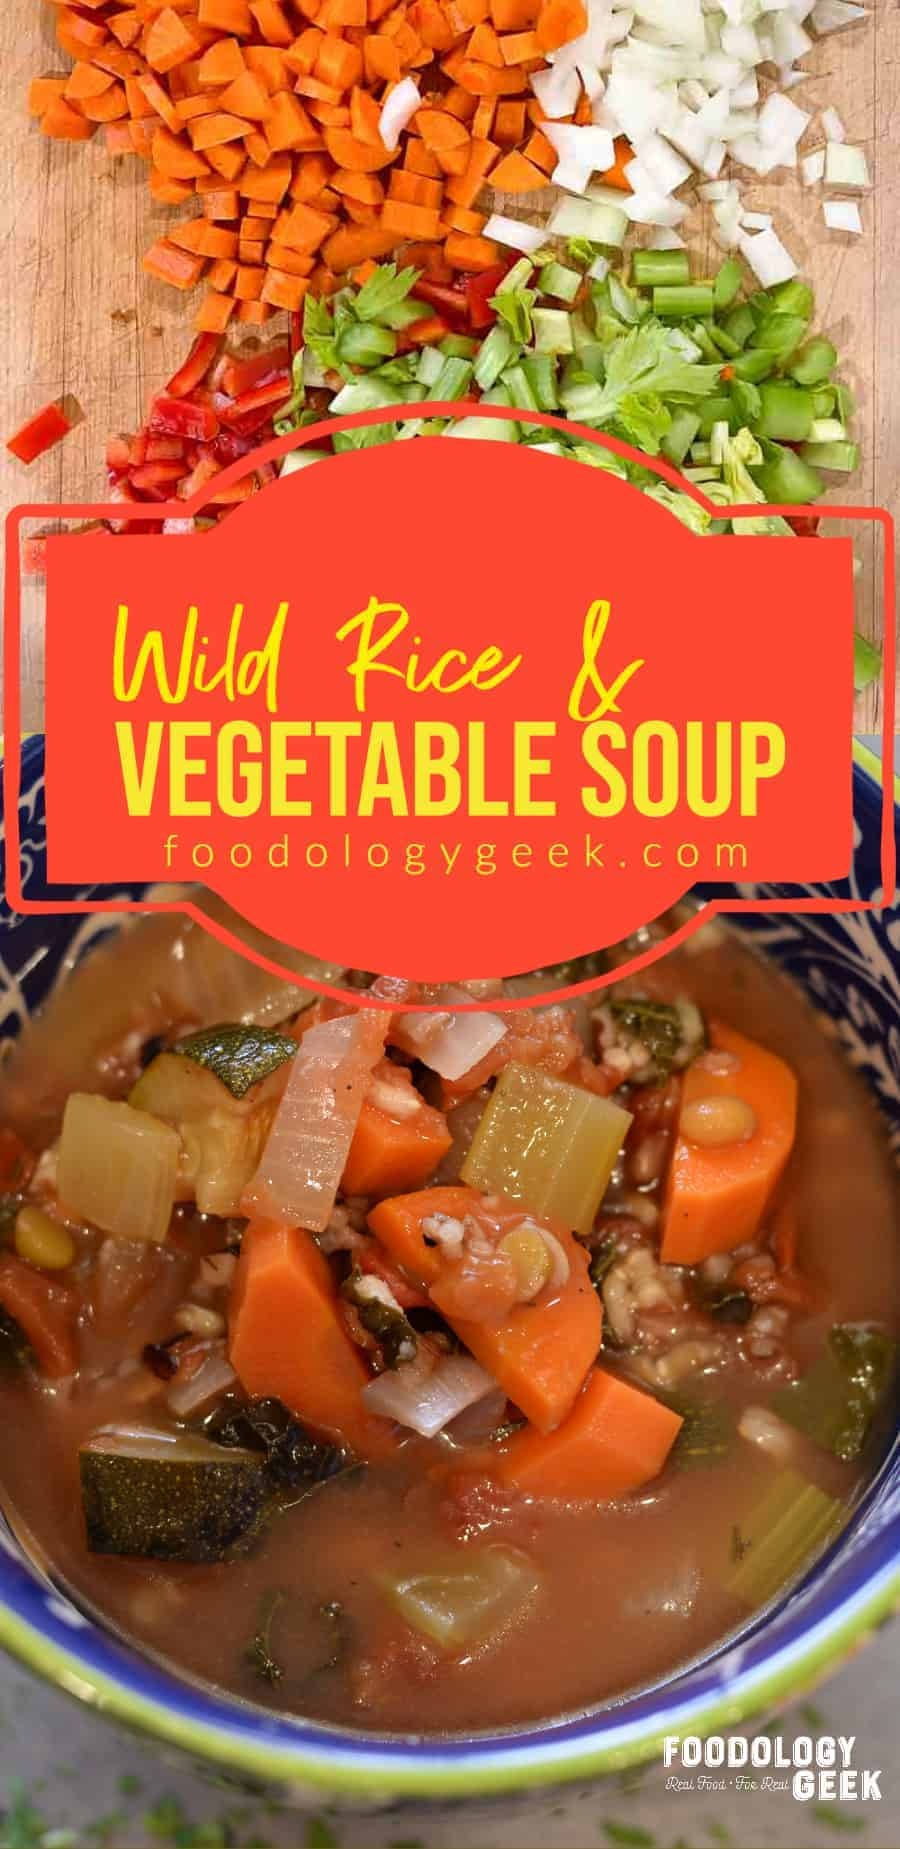 wild rice and vegetable soup pinterest image by foodology geek.